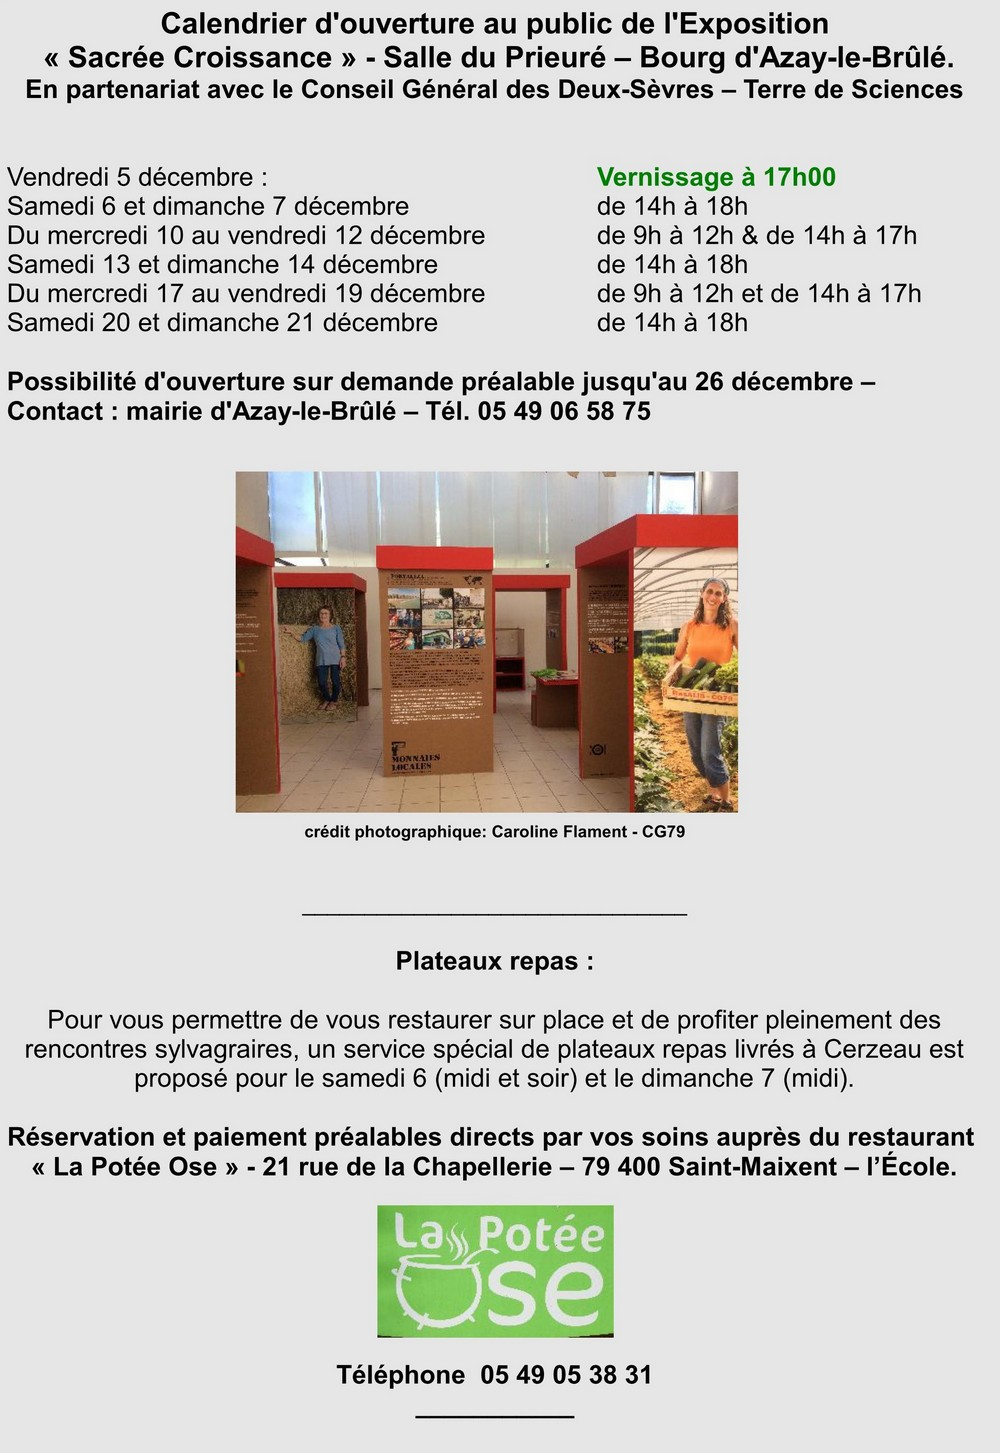 Tract programme Rctres sylvagraires 5 version finale-1_04